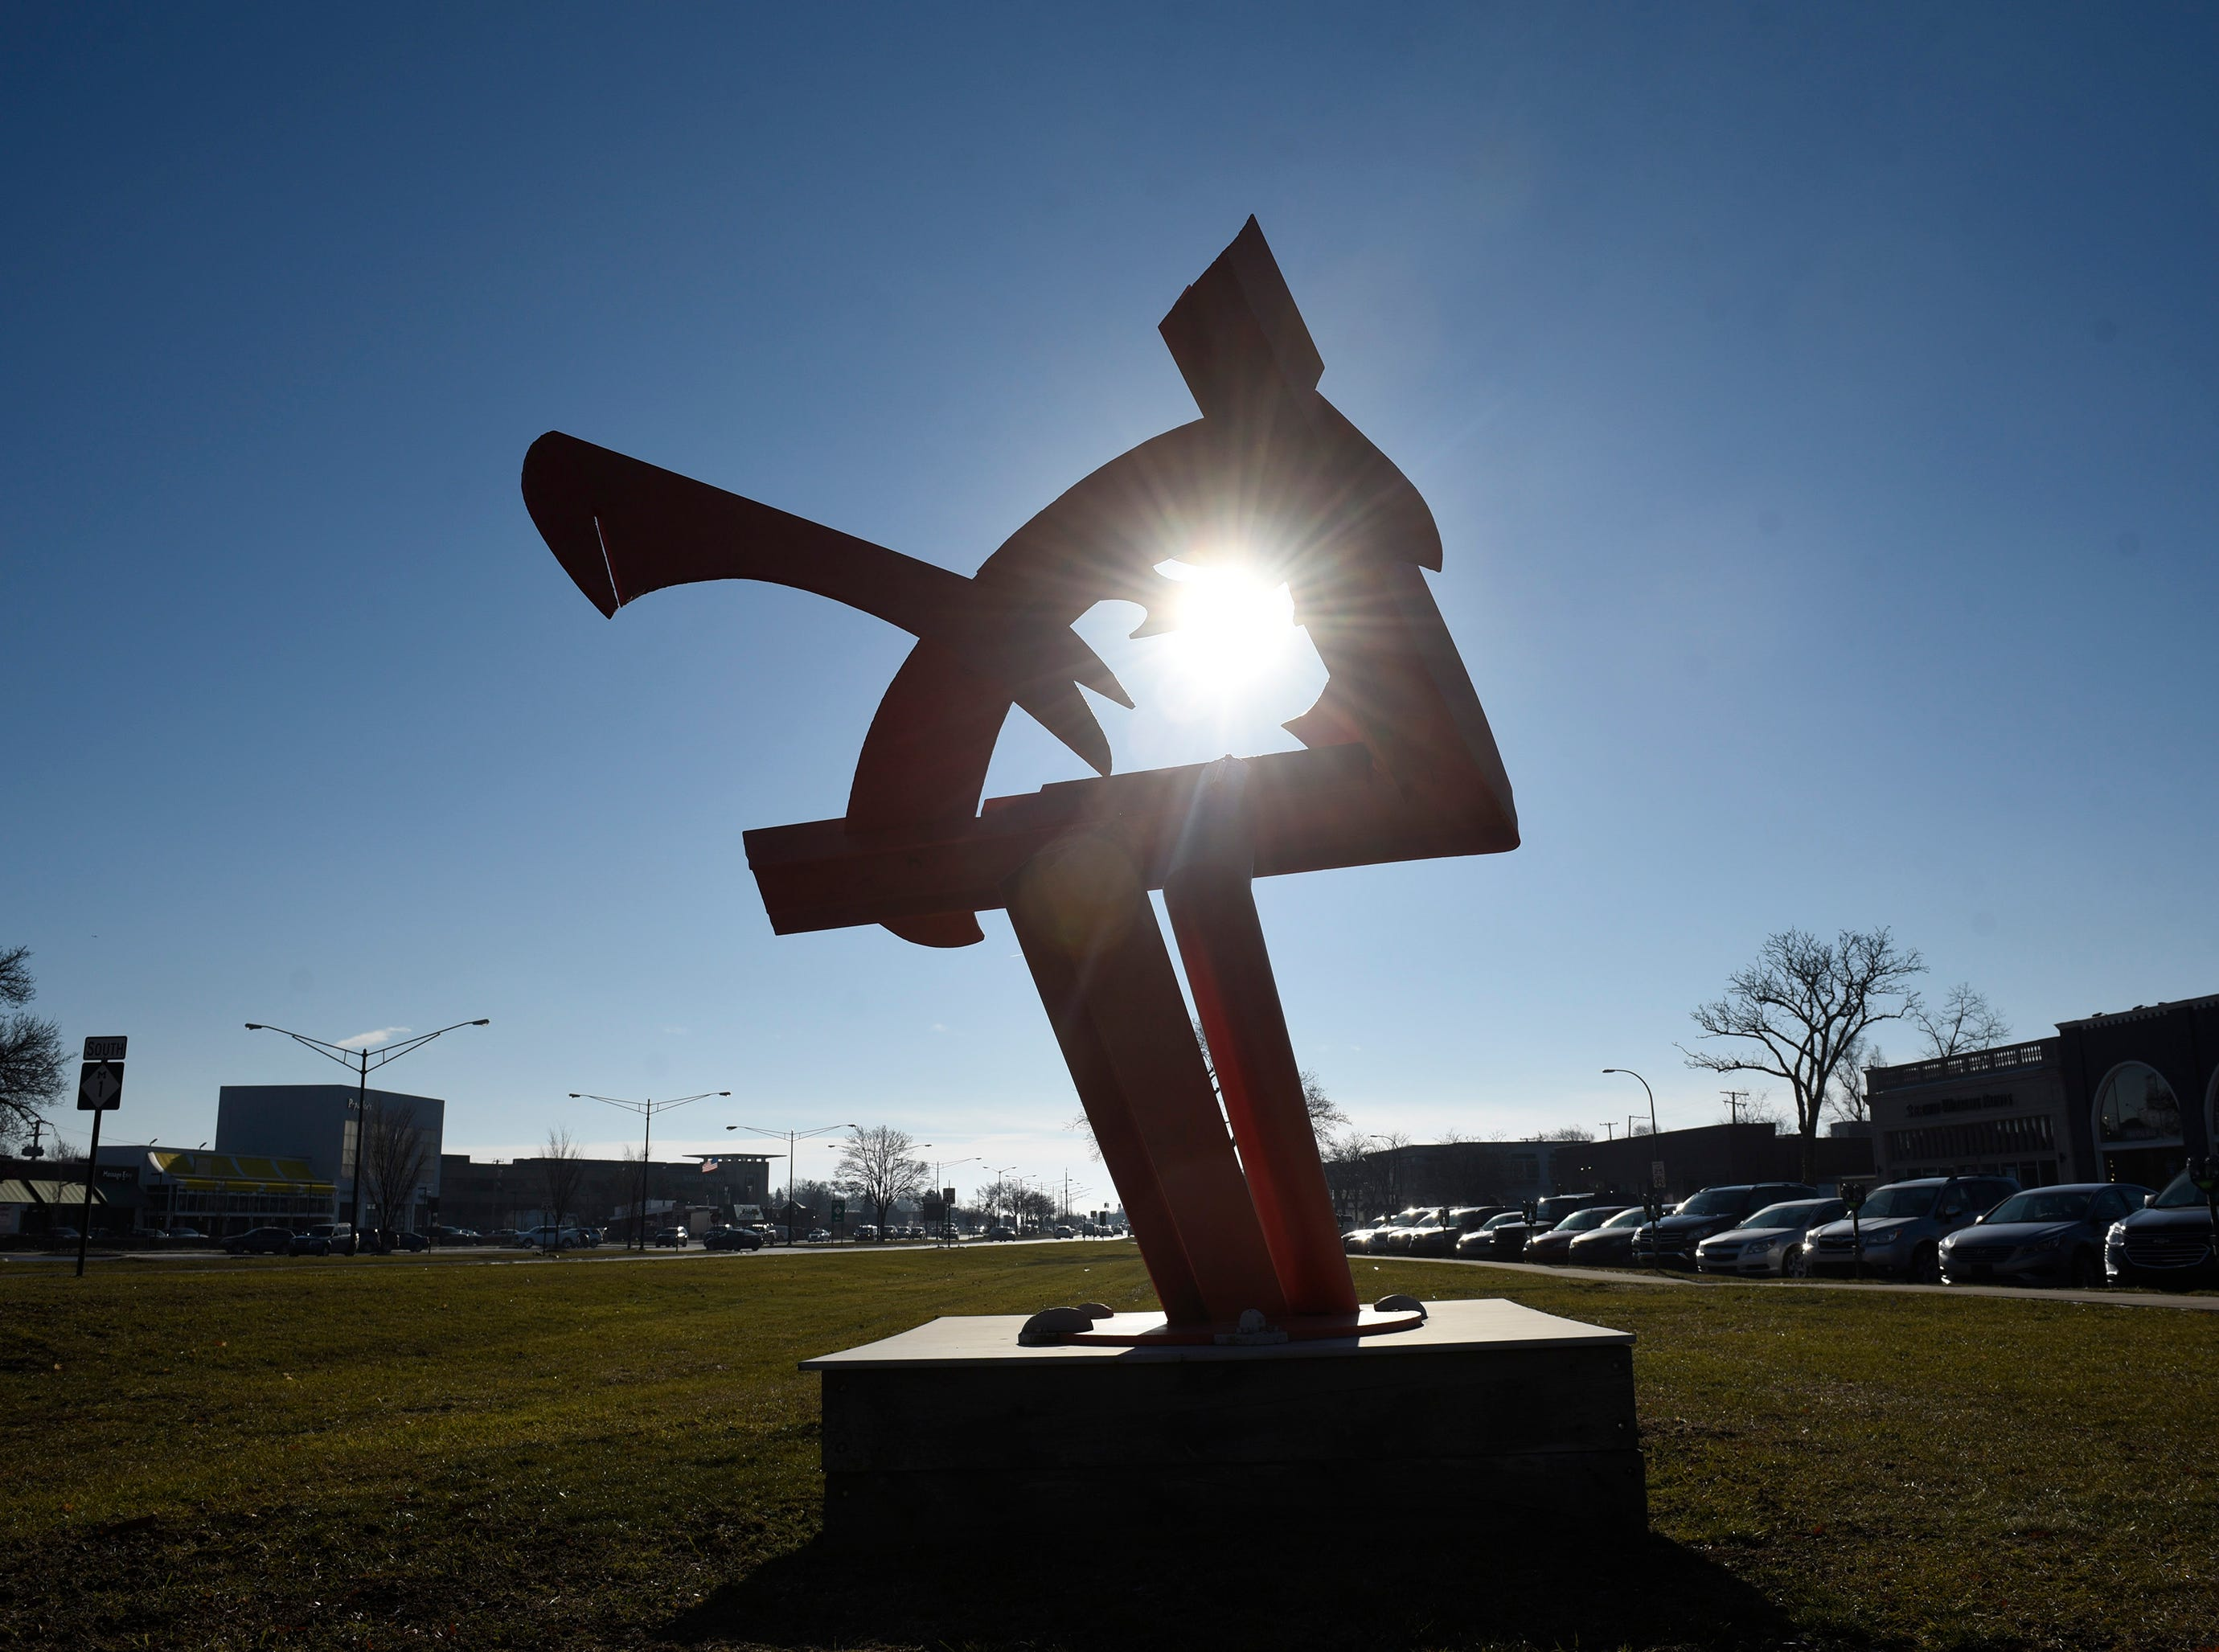 Choopy by Mark di Suvero on Old Woodward just south of the 555 Building.